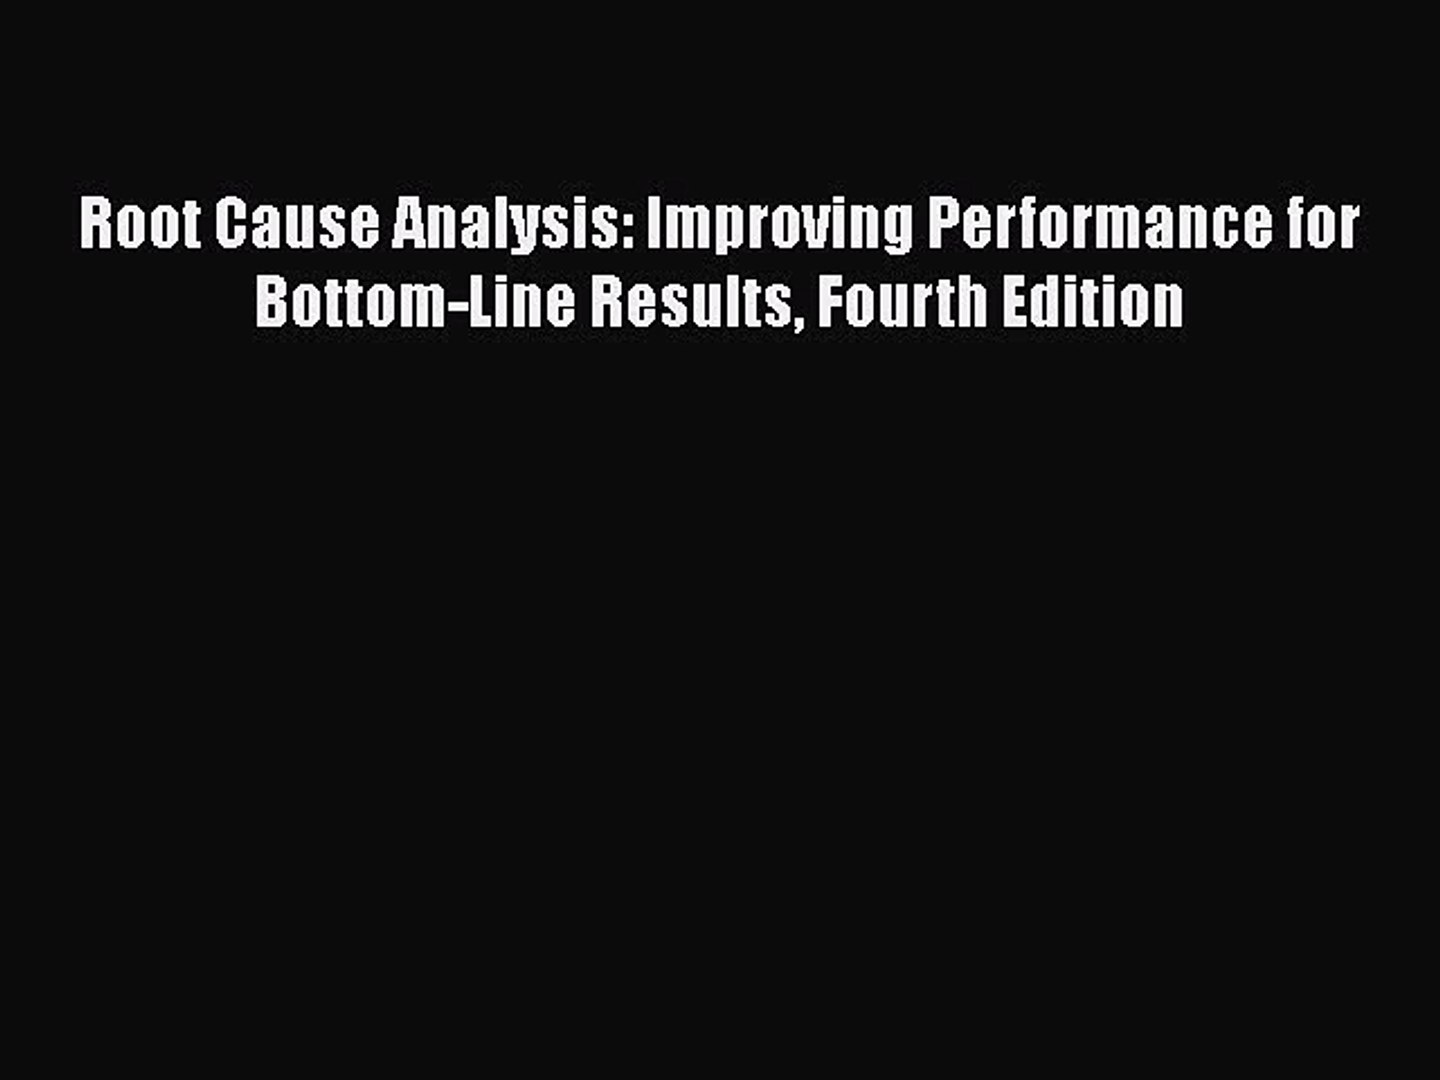 [Read book] Root Cause Analysis: Improving Performance for Bottom-Line Results Fourth Edition